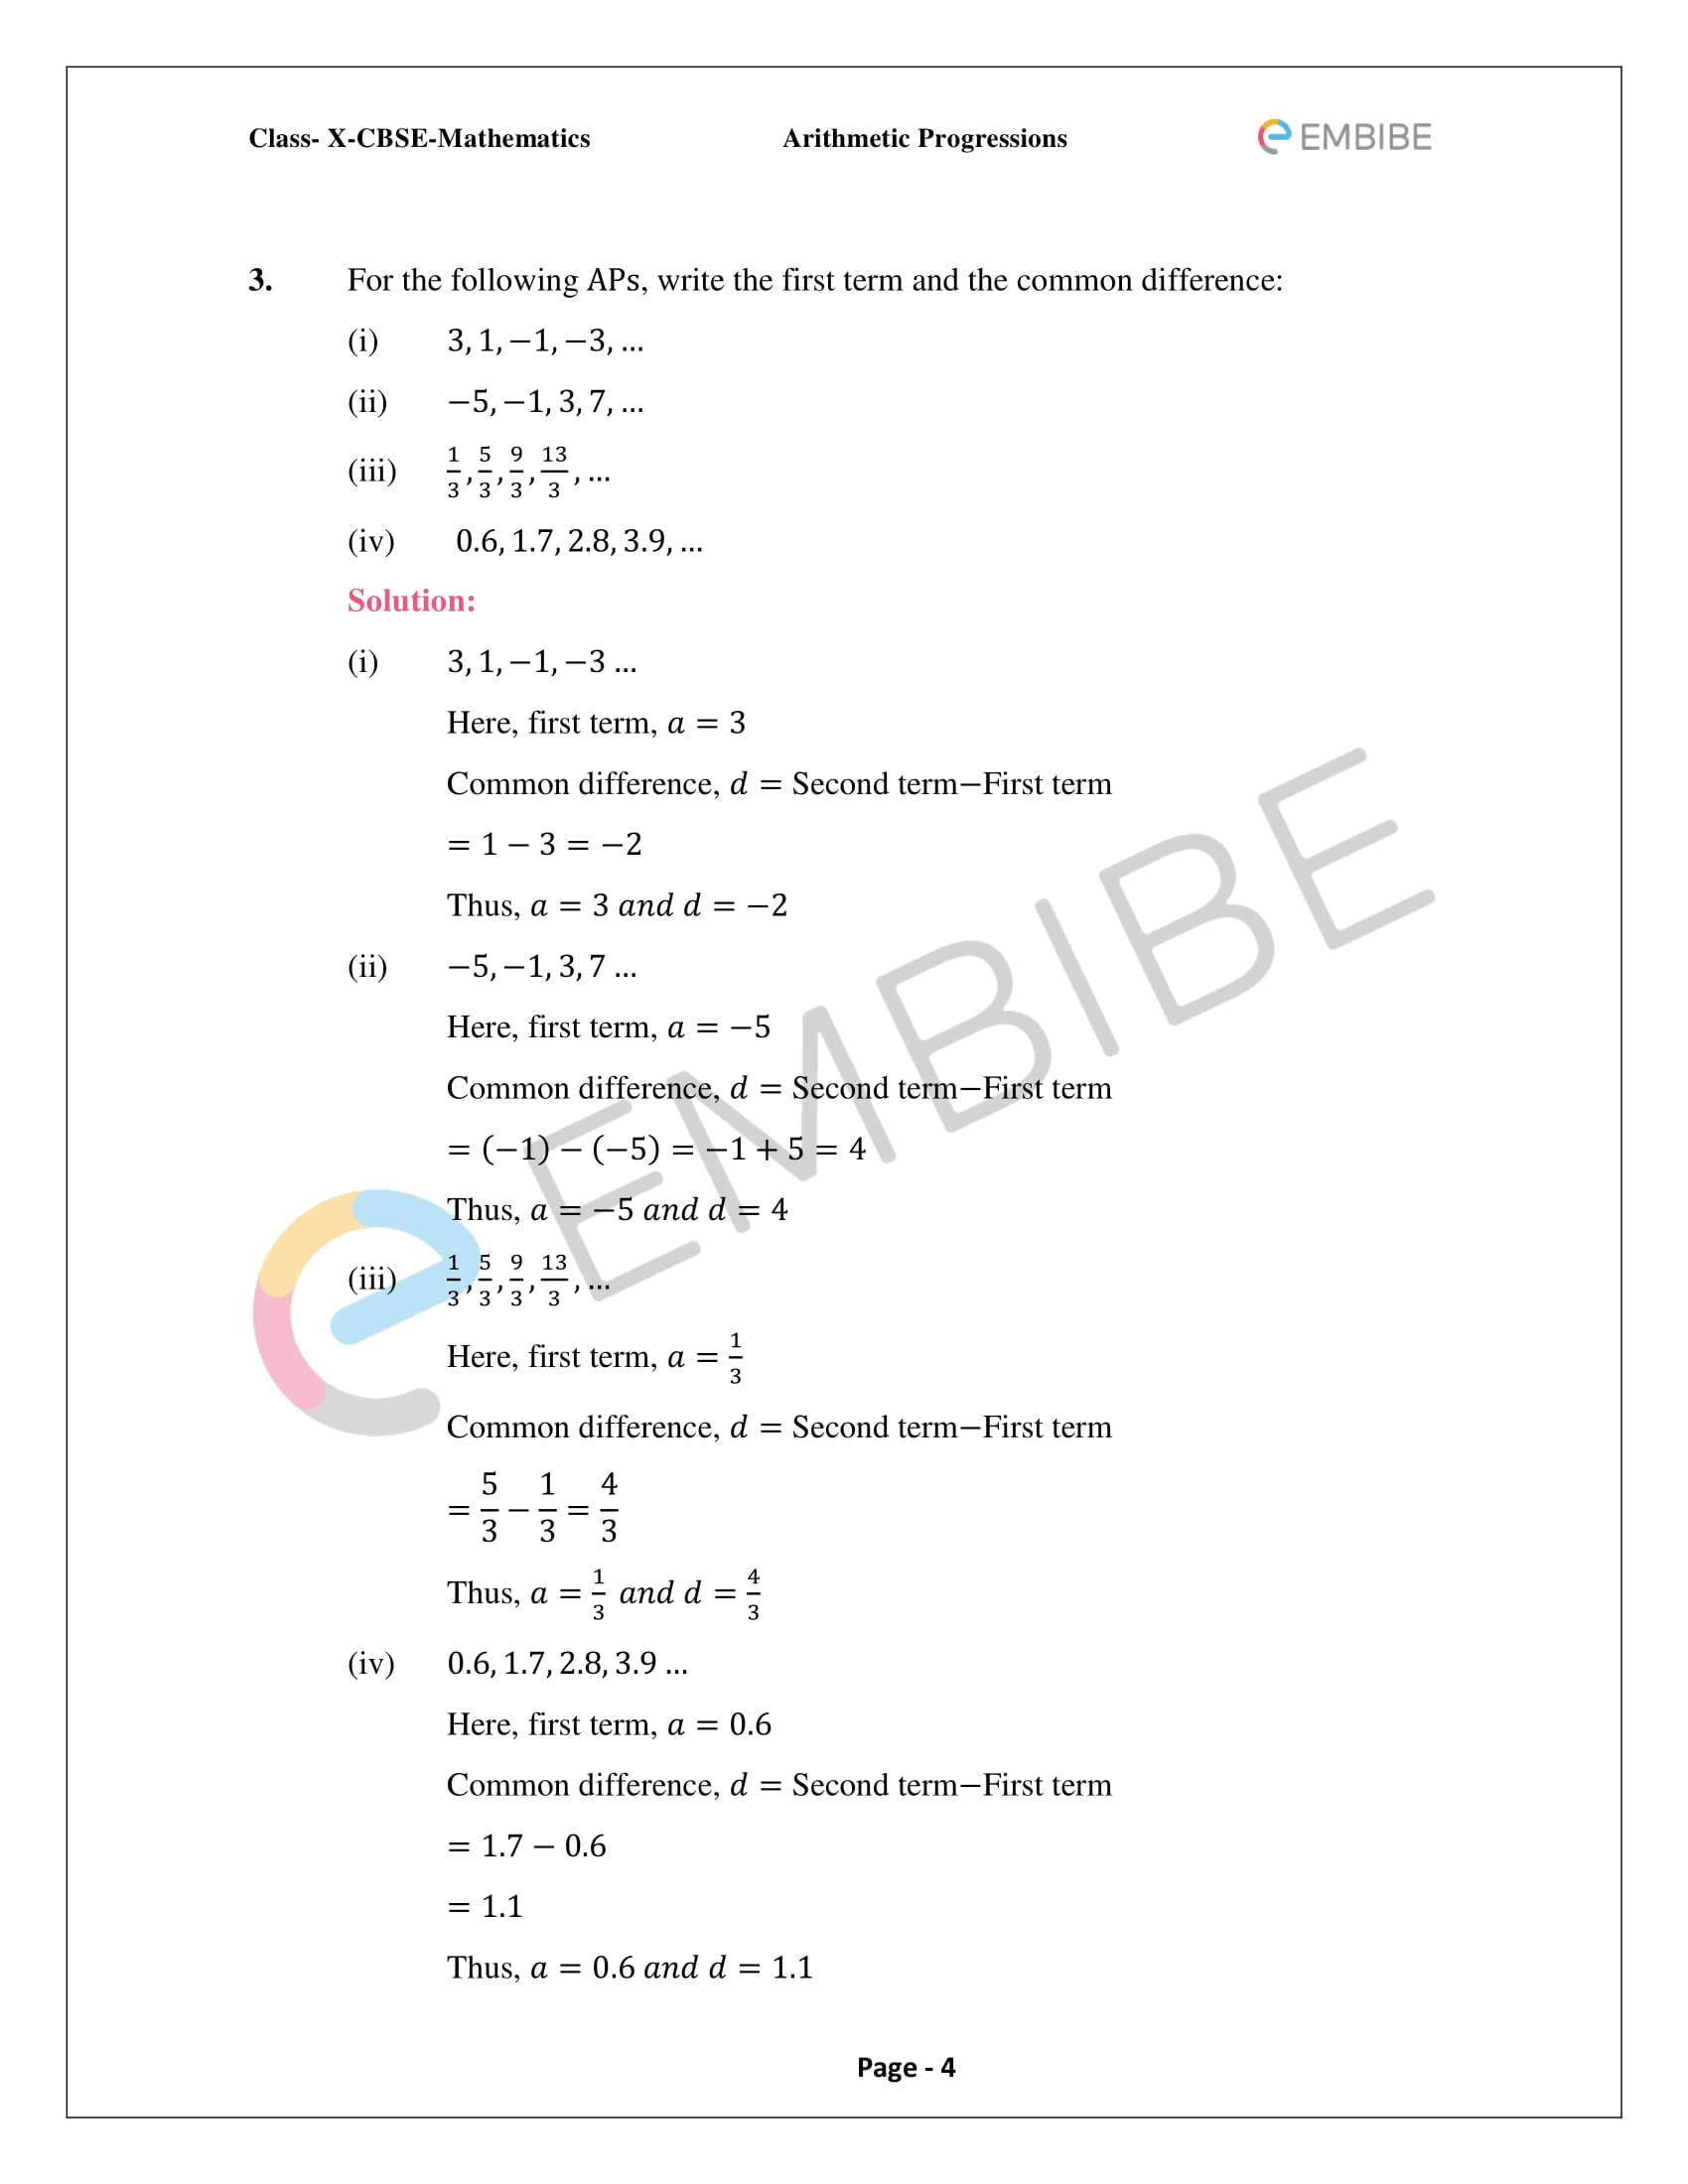 Chapter 5_Arithmetic Progressions-04